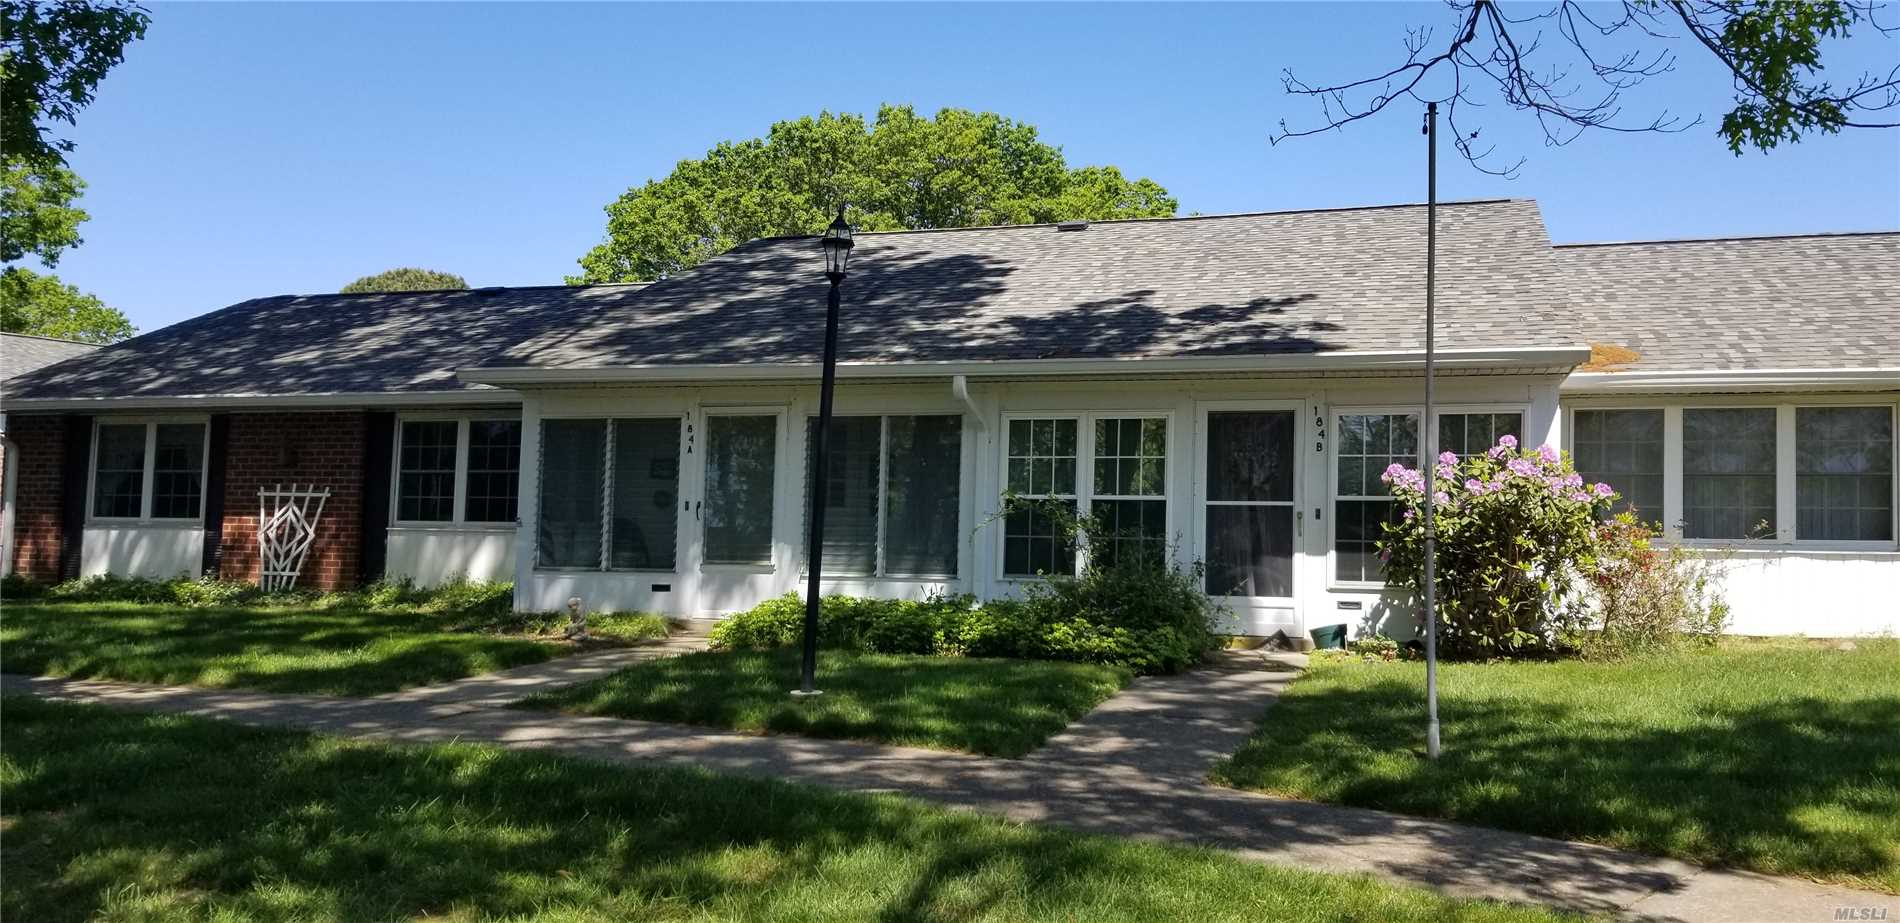 Location Location, only 2 units together, baronet Unit, Large Front Yard, Lots of Natural Sun Light, So many Activities, Golf, Swimming, Ceramic Classes, Wood Shop, Very Active Community, Updated Windows, Updated Garage Door, Updated Bath